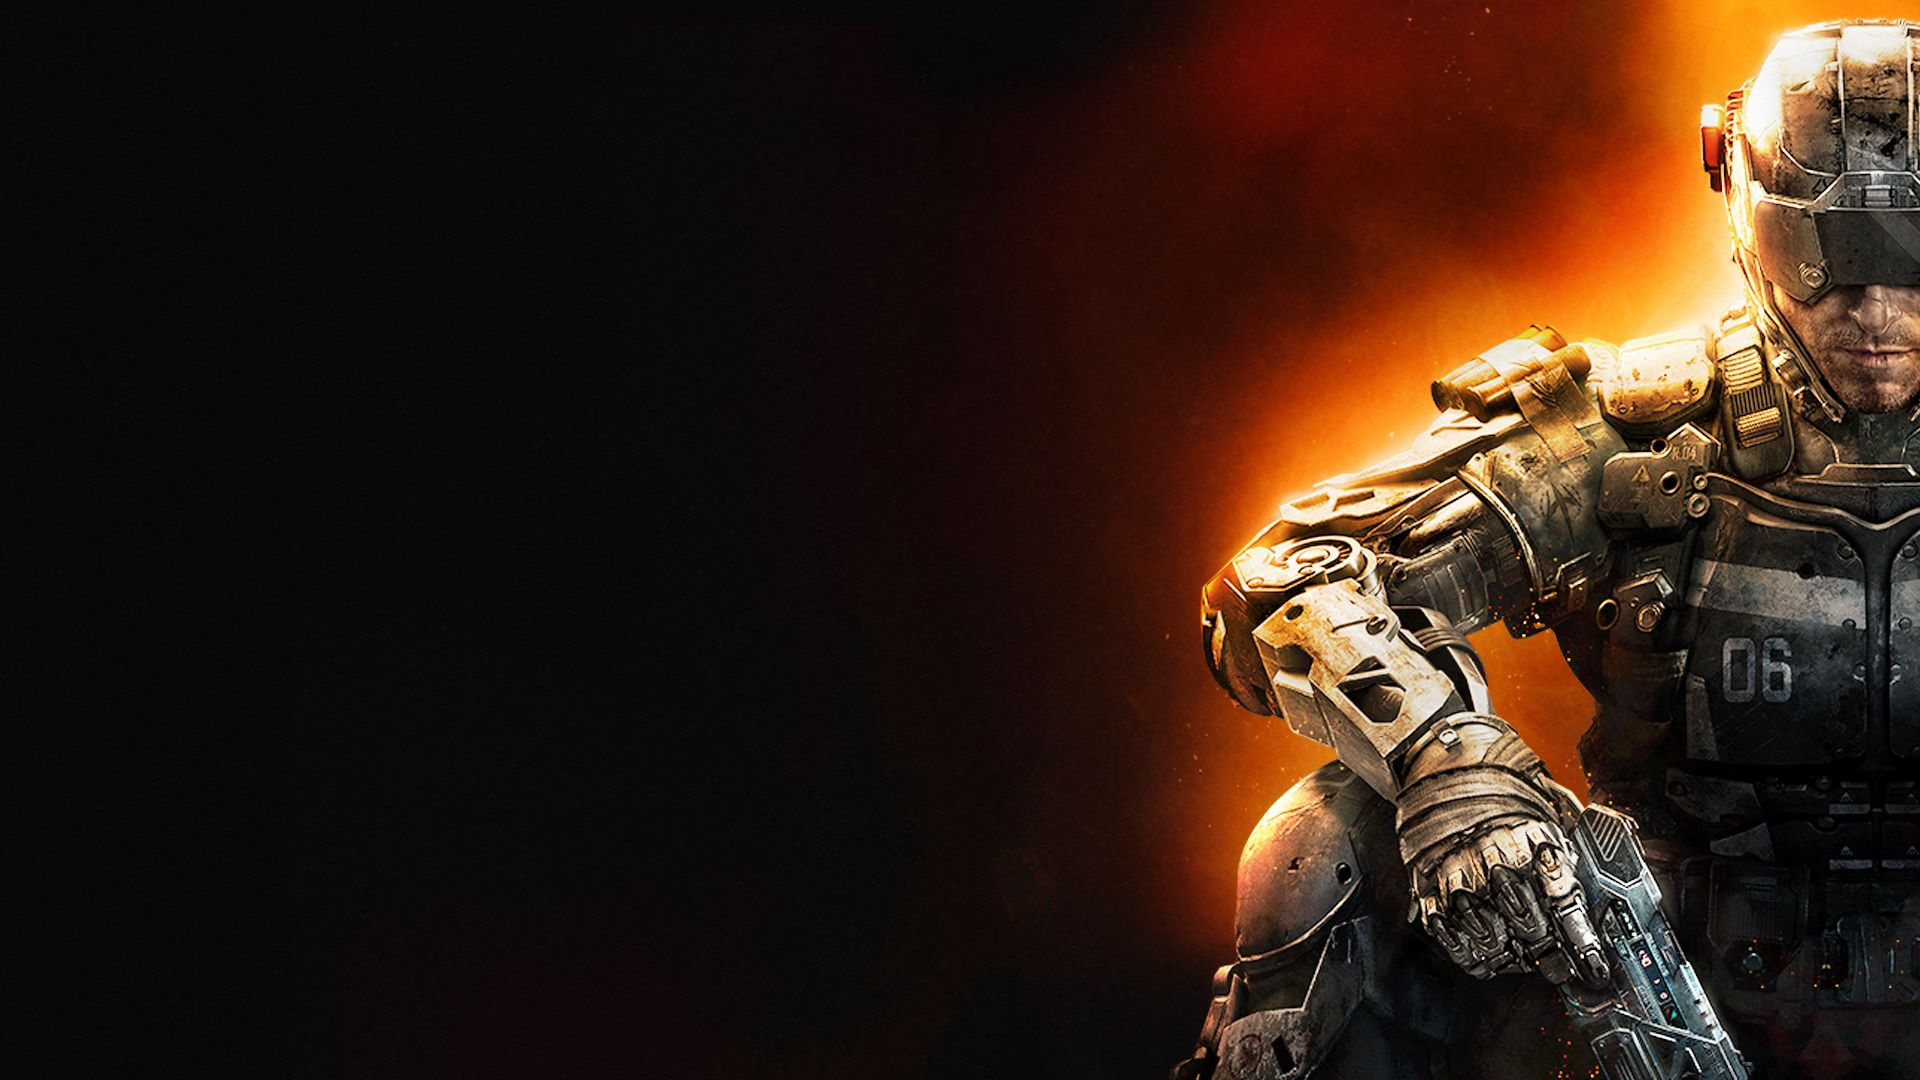 black ops 2 zombies map packs with 1cc09968 536c 445b Aa4c Cbc8da96ac99 on Black Ops 2 Dlc 3 4 Release Date Rumors On Xbox 360 besides Call Of Duty Black Ops 2 Vengeance Dlc Release Fur Ps3 Und Pc Bekannt additionally Call Of Duty Black Ops 3 Confirms Juggernog Hardened And Digital Deluxe Editions Mini Fridge Confirmed 486524 besides Kino Der Toten Playable  ing Soon furthermore First Call Of Duty Black Ops 3 Dlc Is Called Awakening Hits In Early 2016.